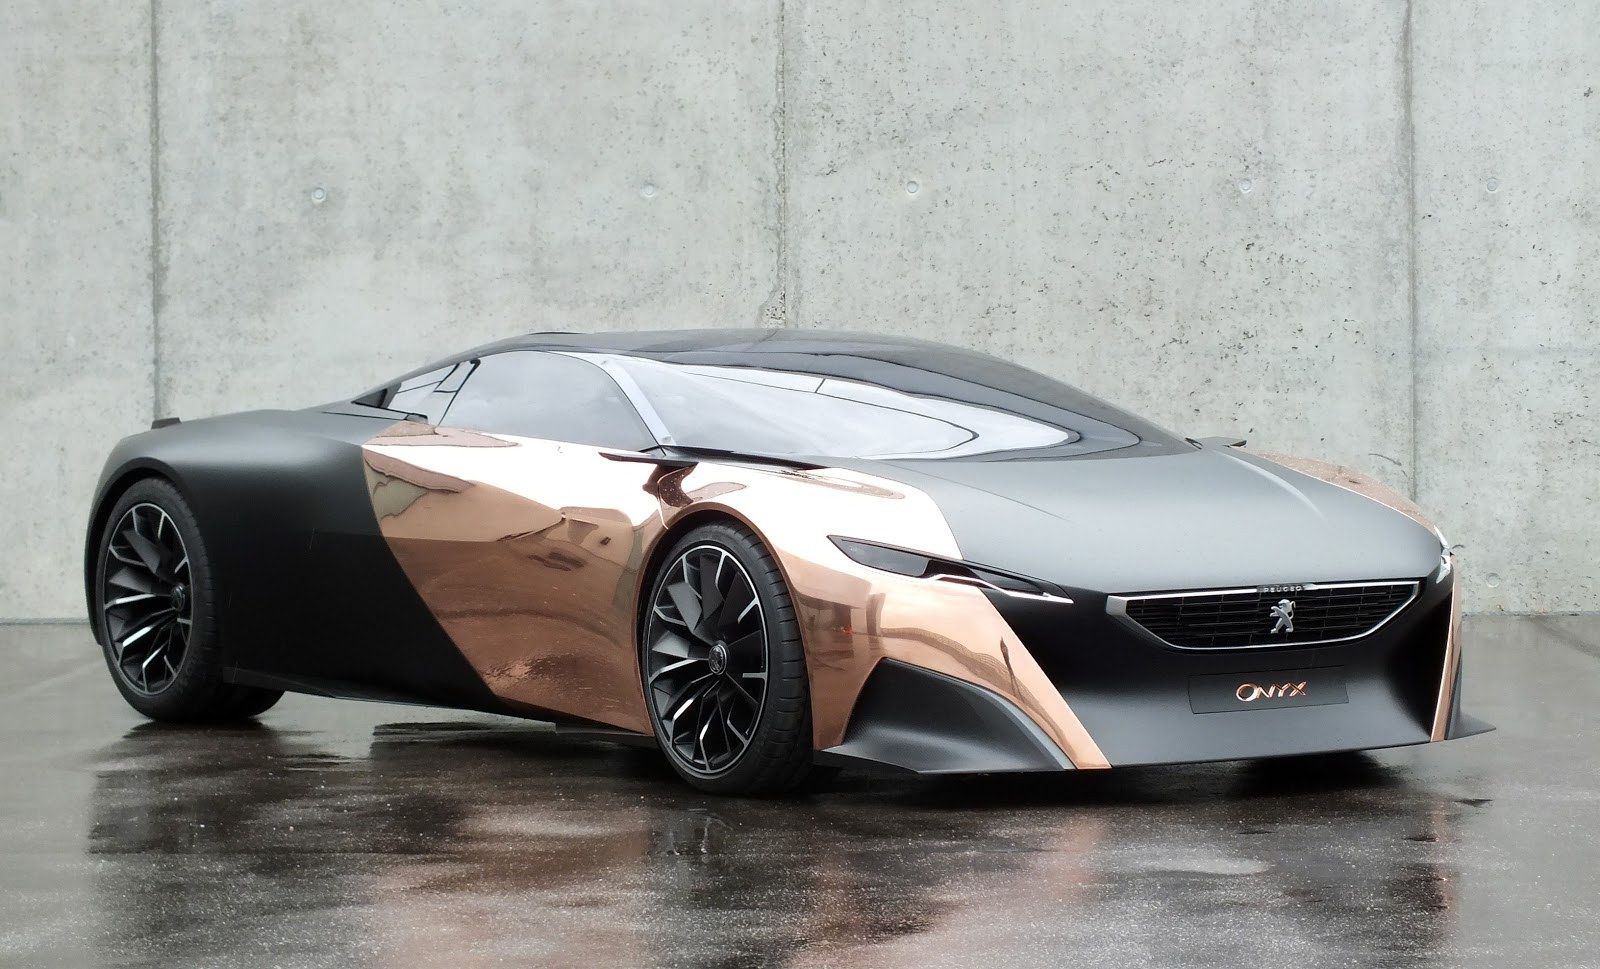 peugeot onyx supercar concept peugeot cars and luxury cars. Black Bedroom Furniture Sets. Home Design Ideas